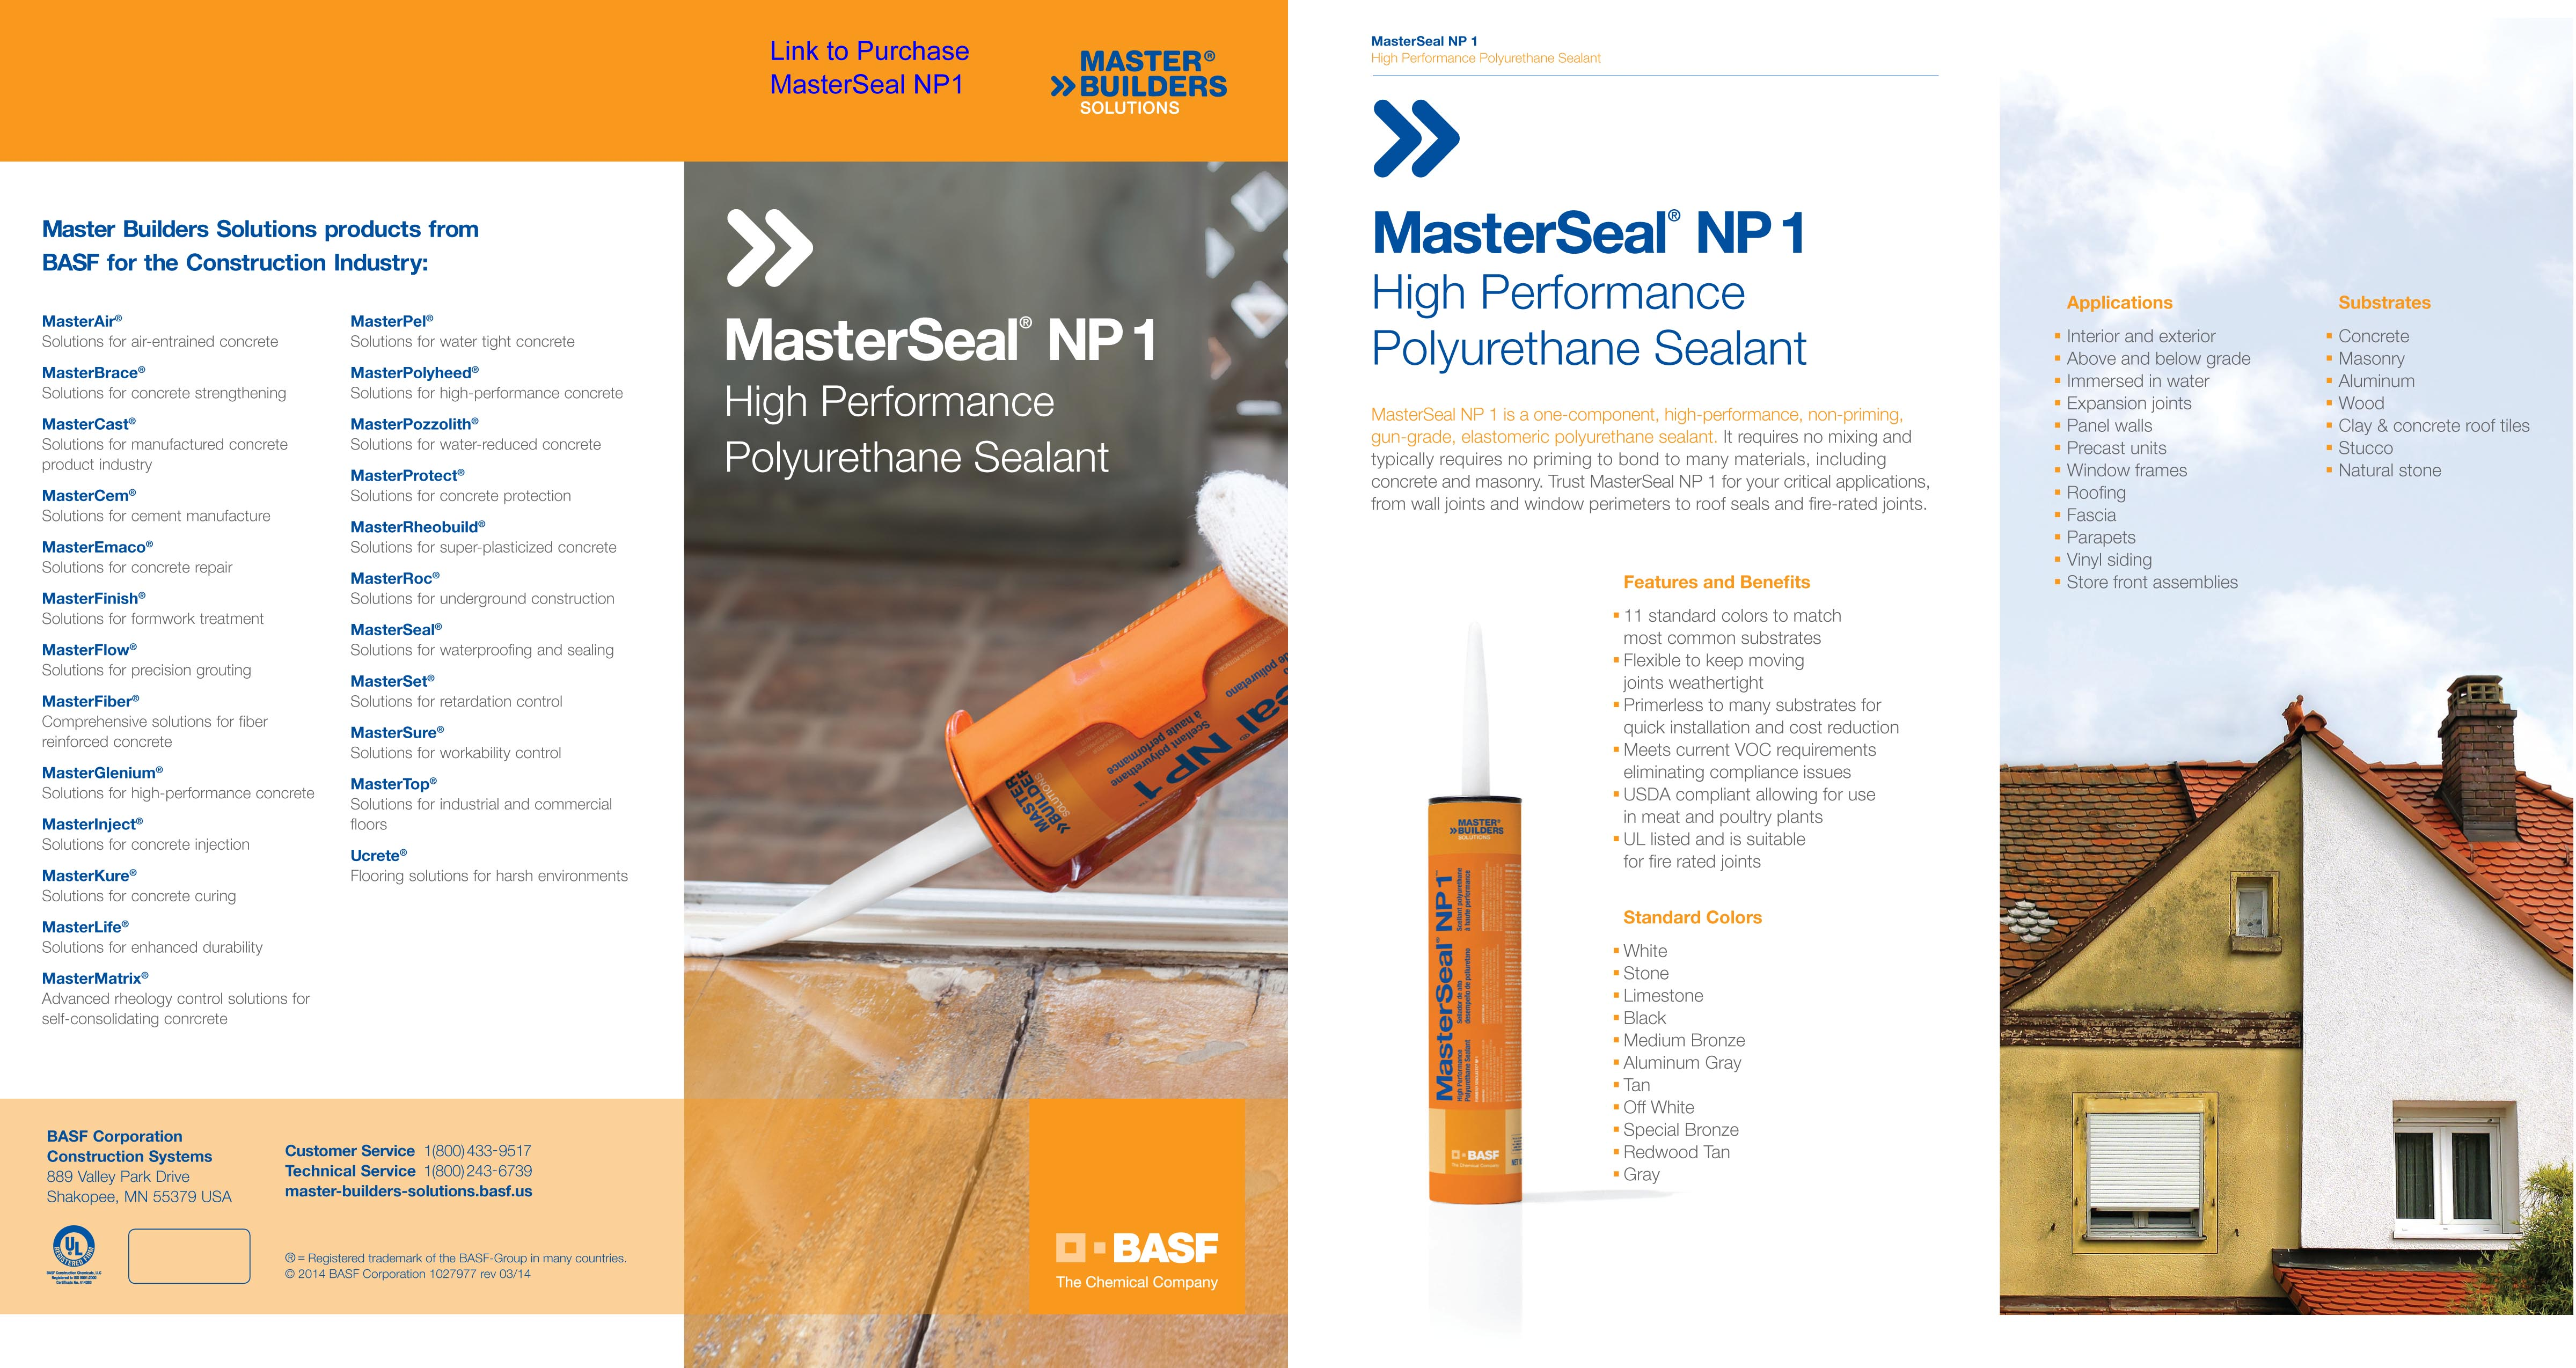 Masterseal Np1